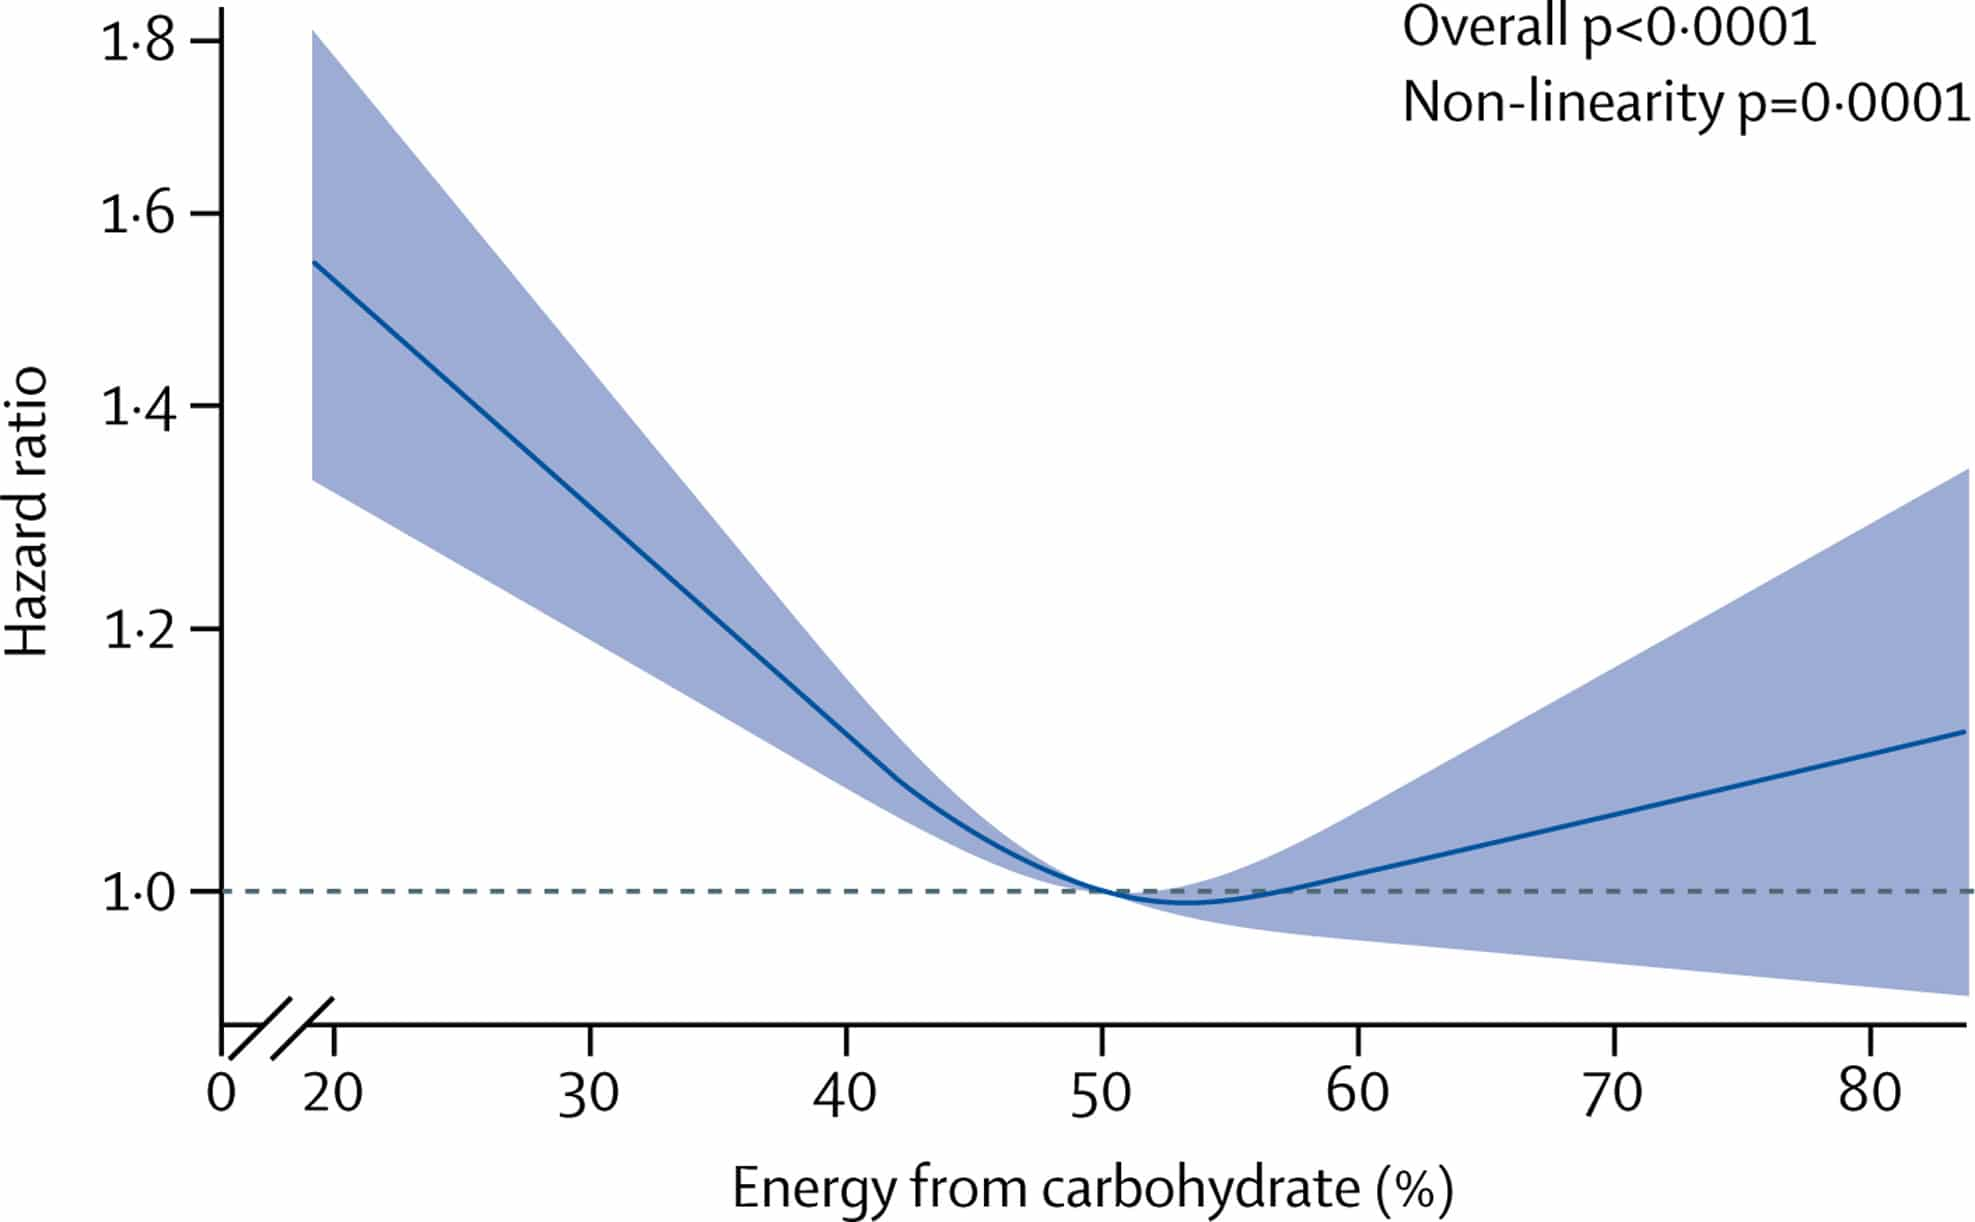 Graph showing the nonlinear relationship between carbohydrate consumption and mortality compared to the reference group